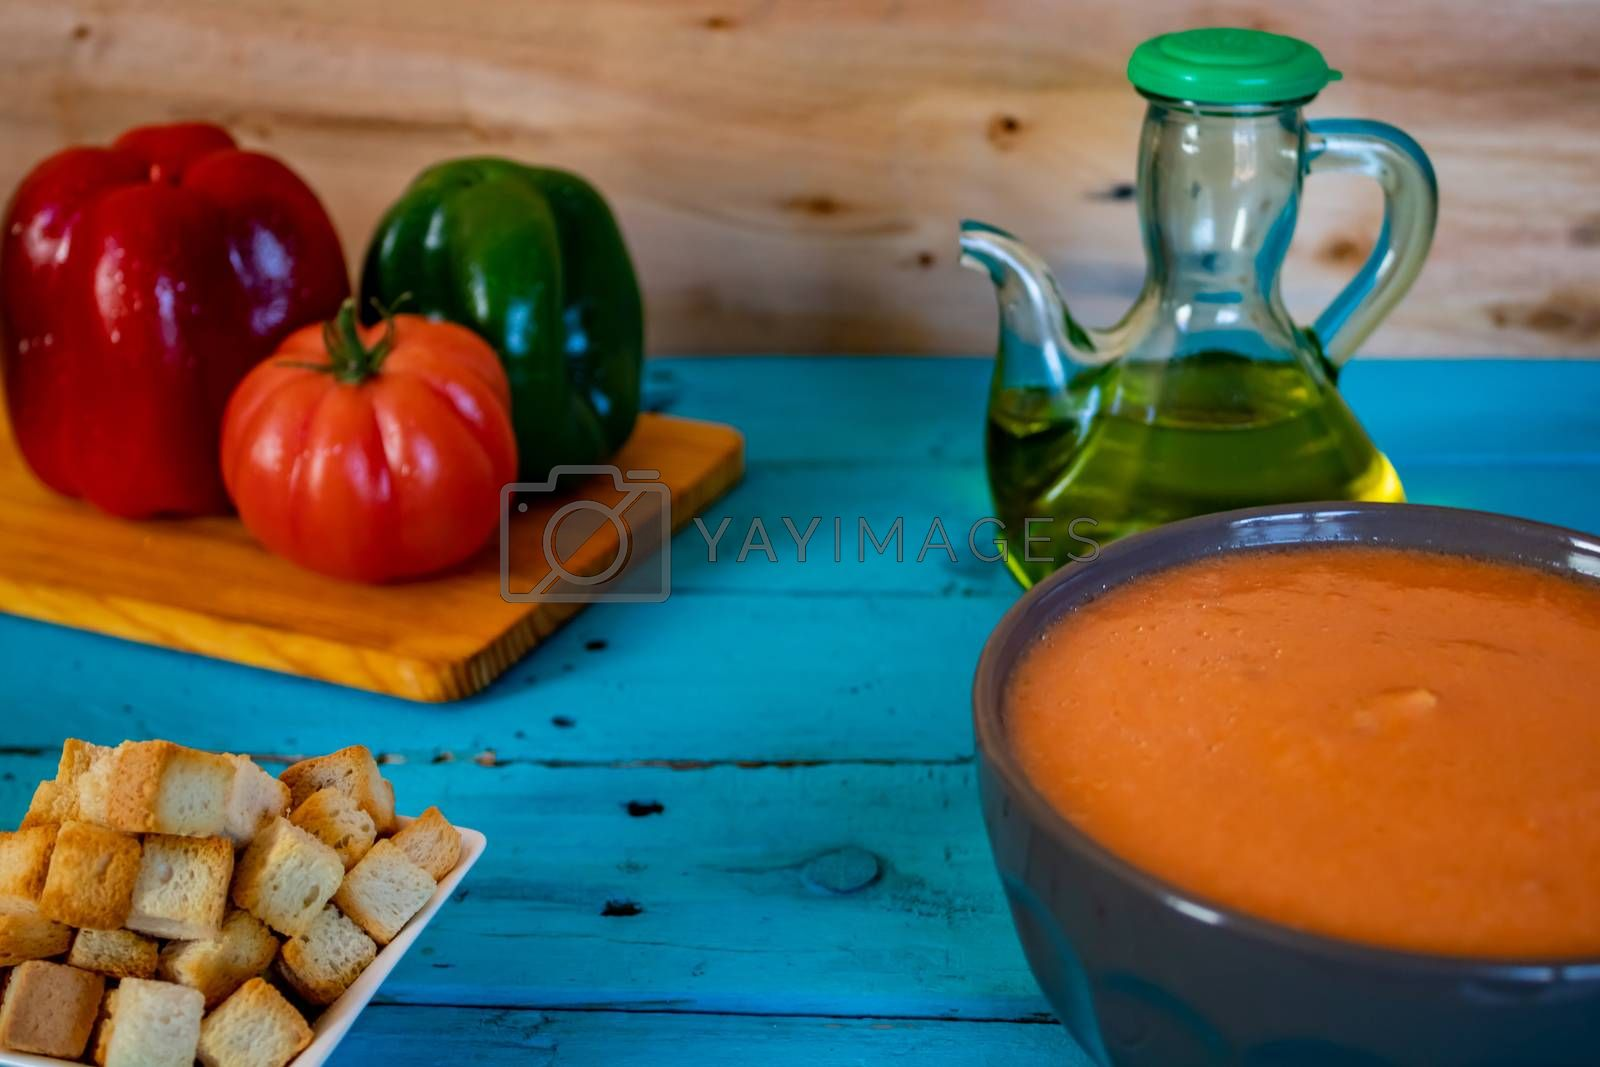 View of gazpacho, a typical Spanish meal with its ingredients in composition